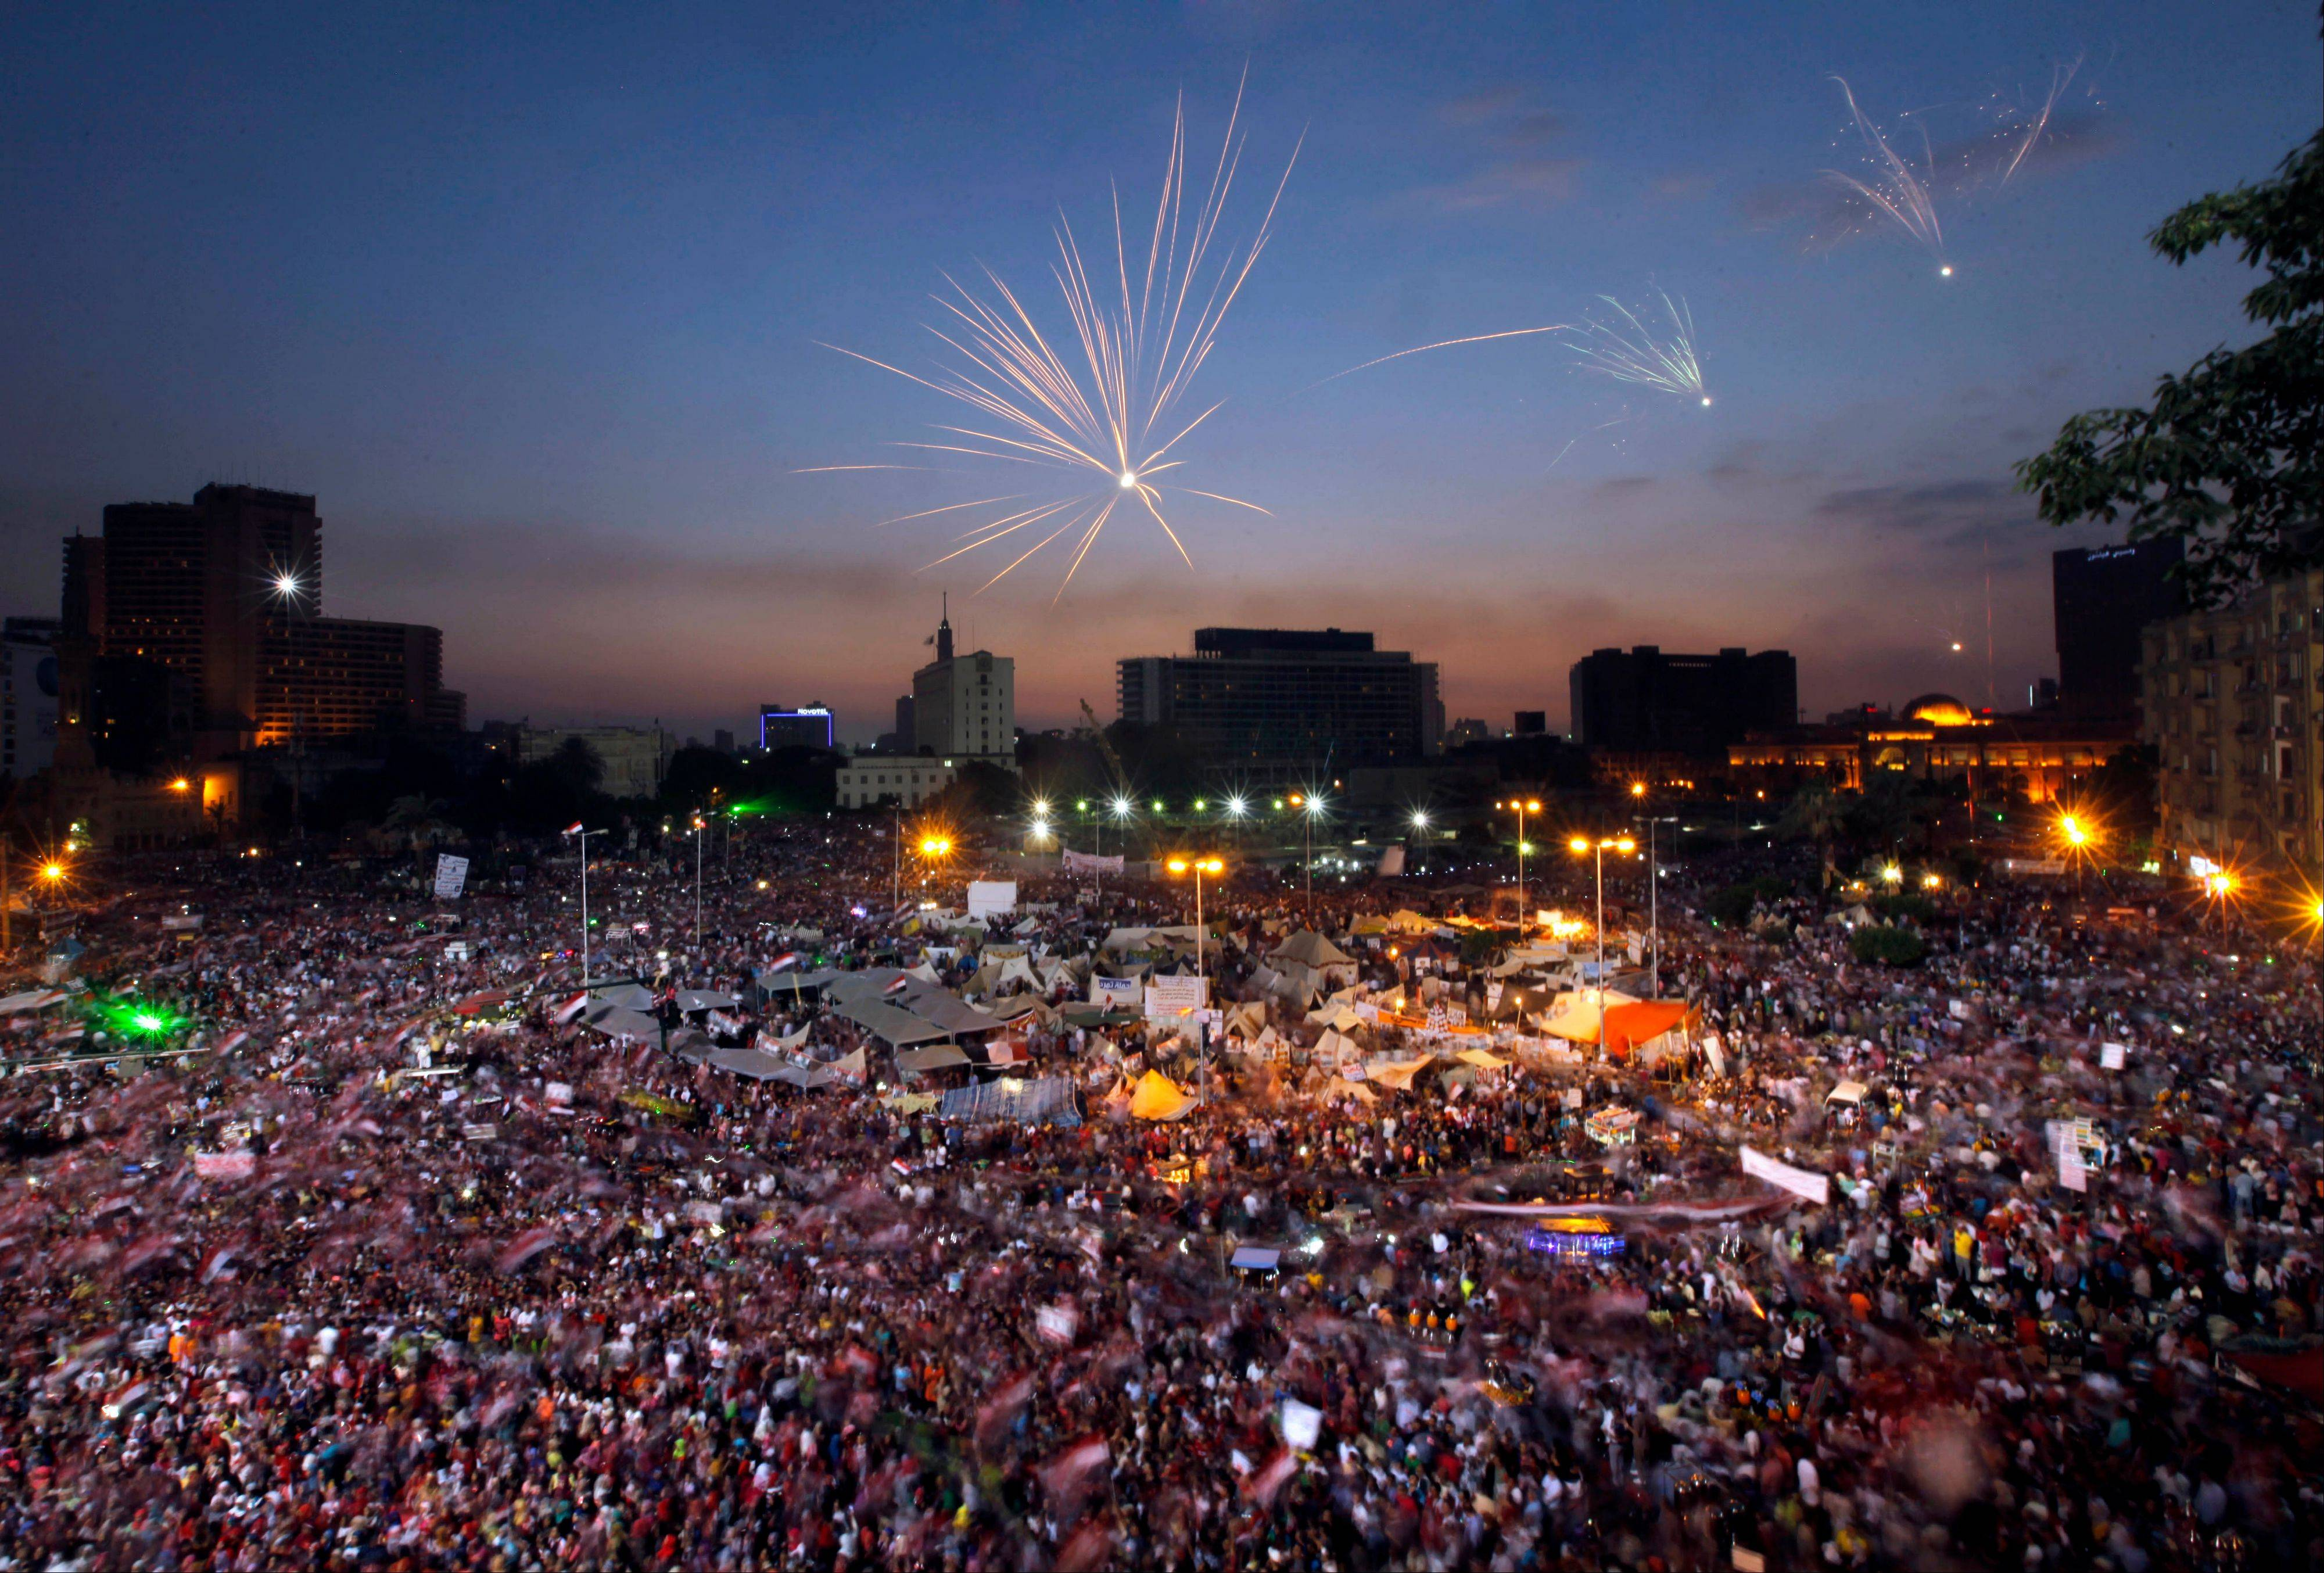 Fireworks burst over opponents of Egypt�s Islamist President Mohammed Morsi in Tahrir Square in Cairo, Egypt, Tuesday. With a military deadline for intervention ticking down, protesters seeking the ouster of Egypt�s Islamist president sought Tuesday to push the embattled leader further toward the edge with another massive display of people power.